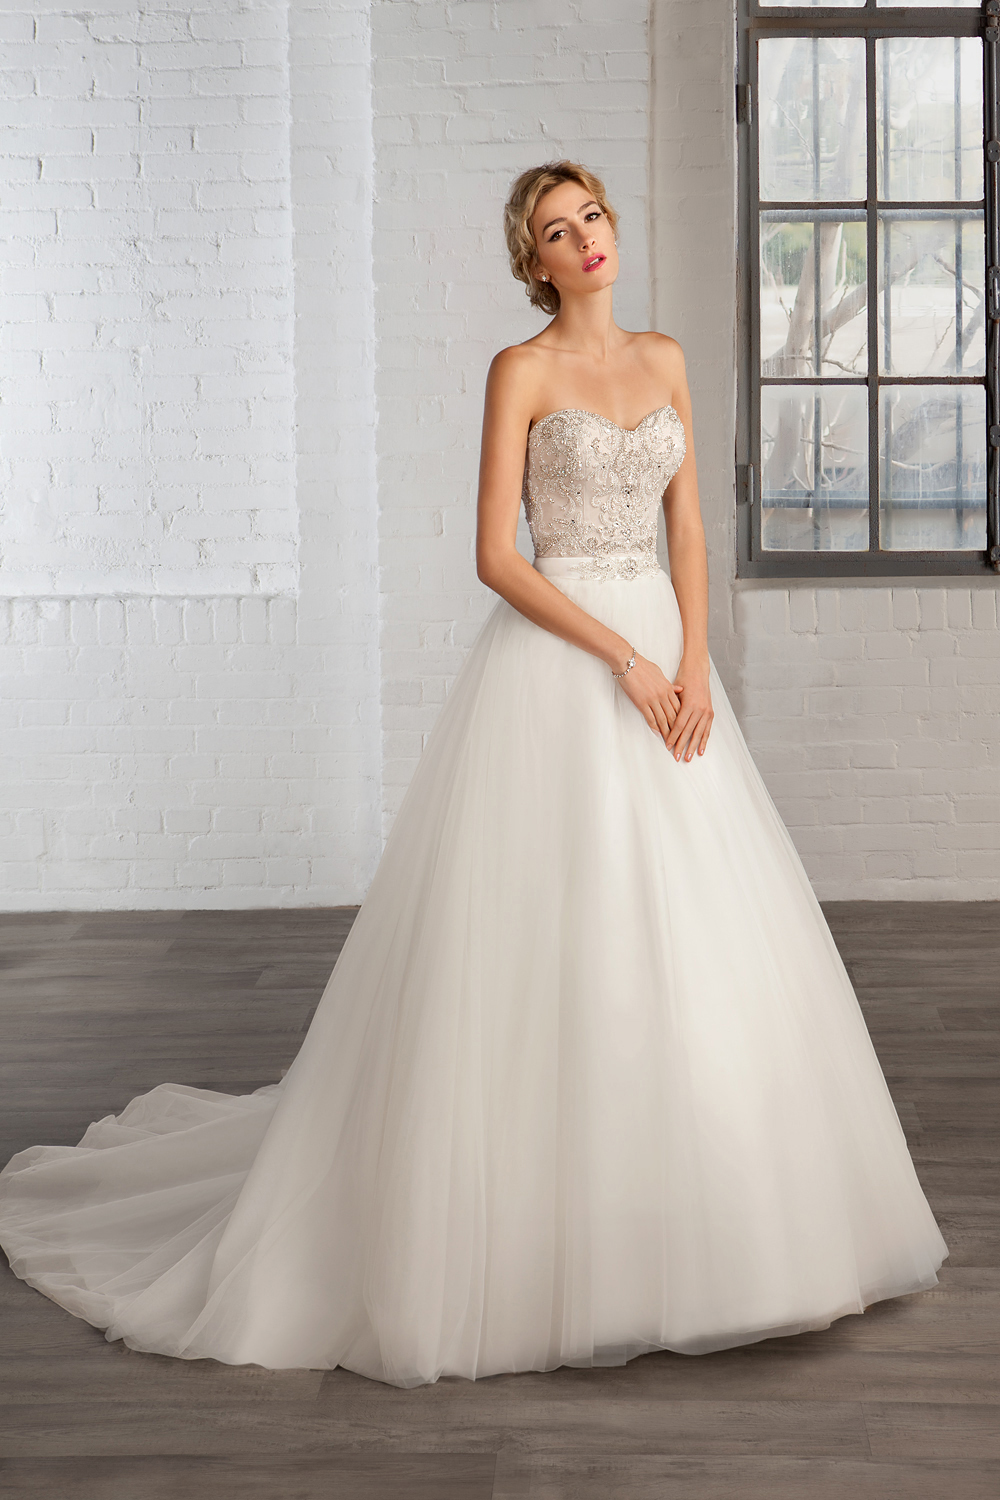 Hot Brazil Allure A Line Sleeveless Wedding Gowns With Beading Court Train Online China Zouboutin In Dresses From Weddings Events On